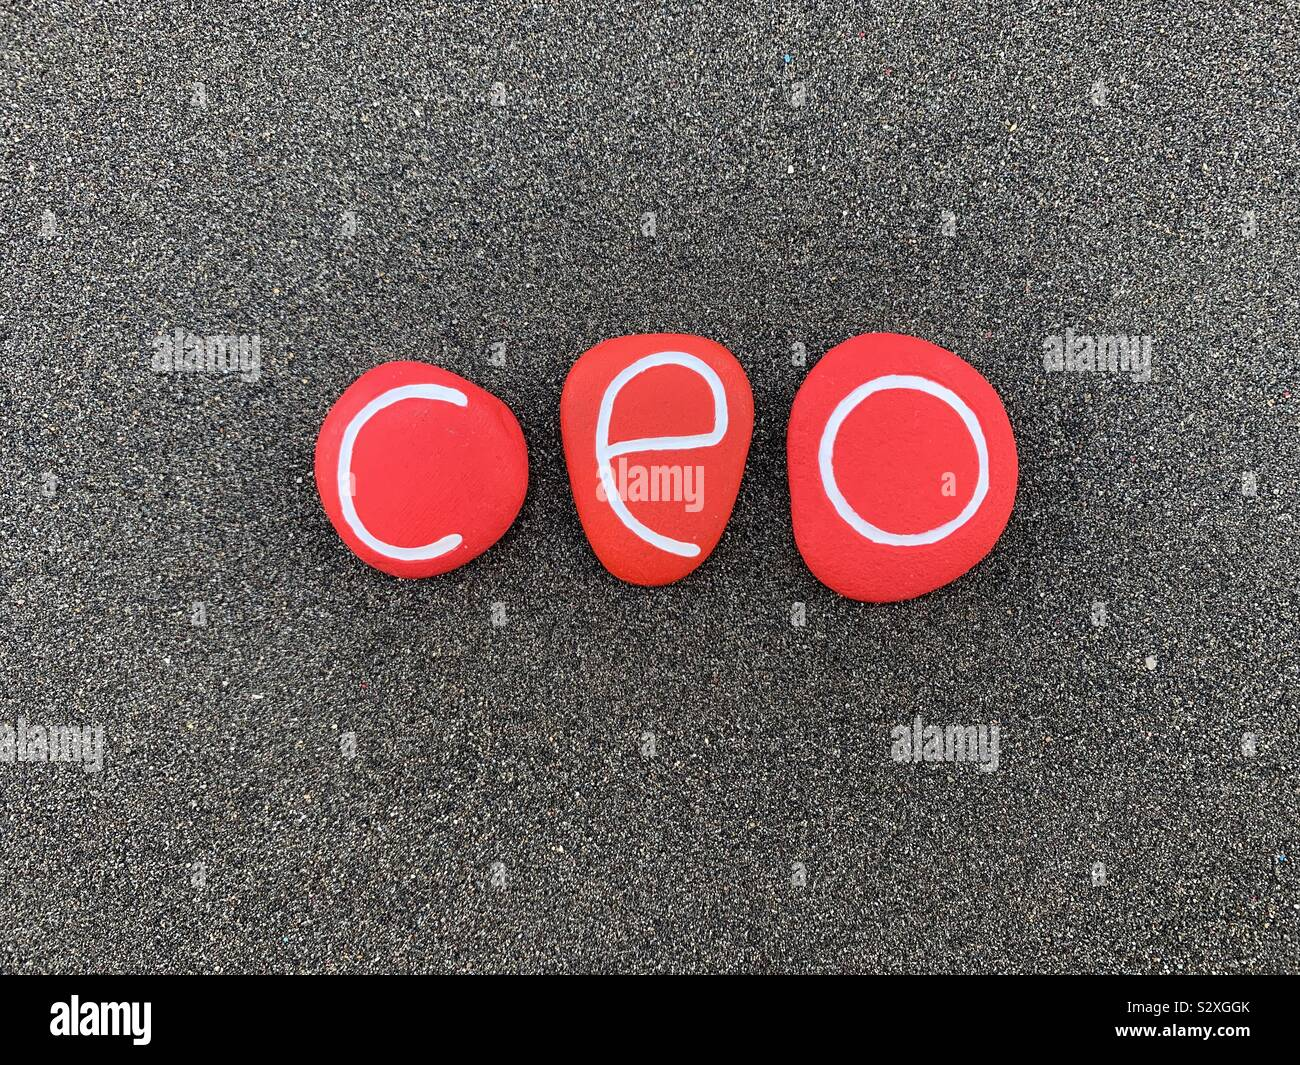 Ceo, Chief Executive Officer composed with red colored stones over black volcanic sand Stock Photo